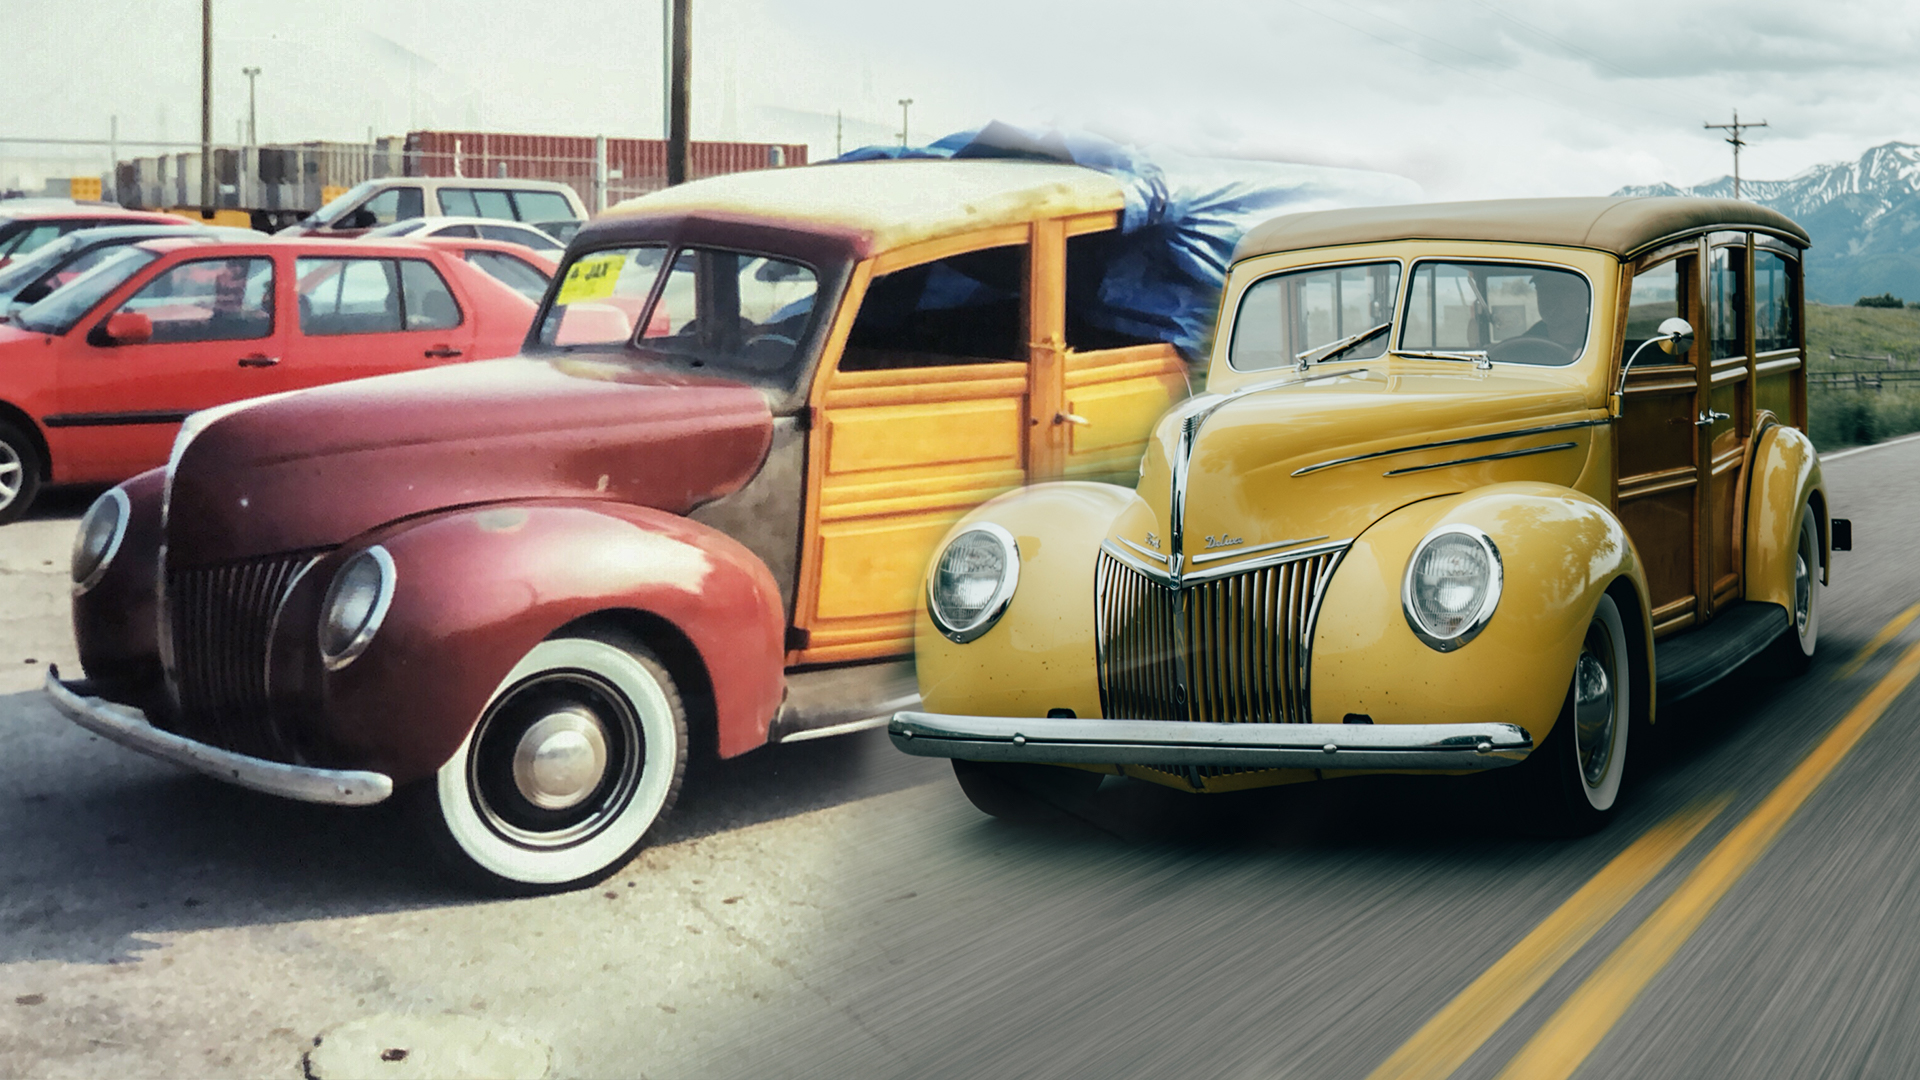 BFH Story of Tom's Ford Woodie Wagon